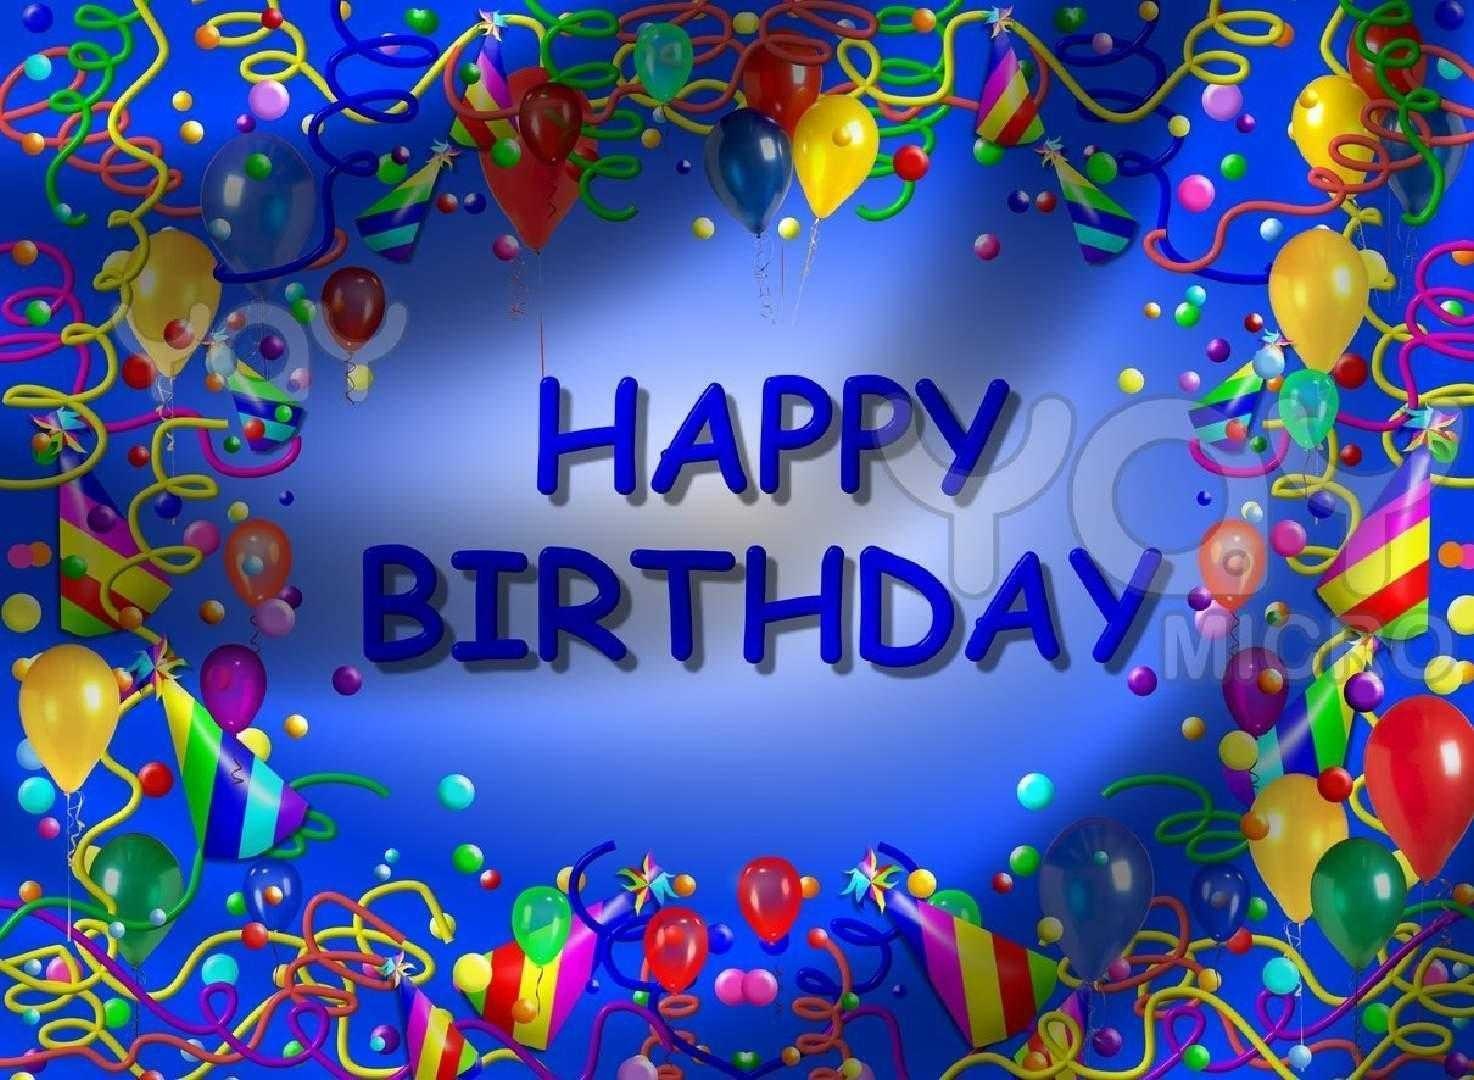 happy birthday wallpaper free mobile ; happy-birthday-pictures-hd-images-desktop-picture-of-mobile